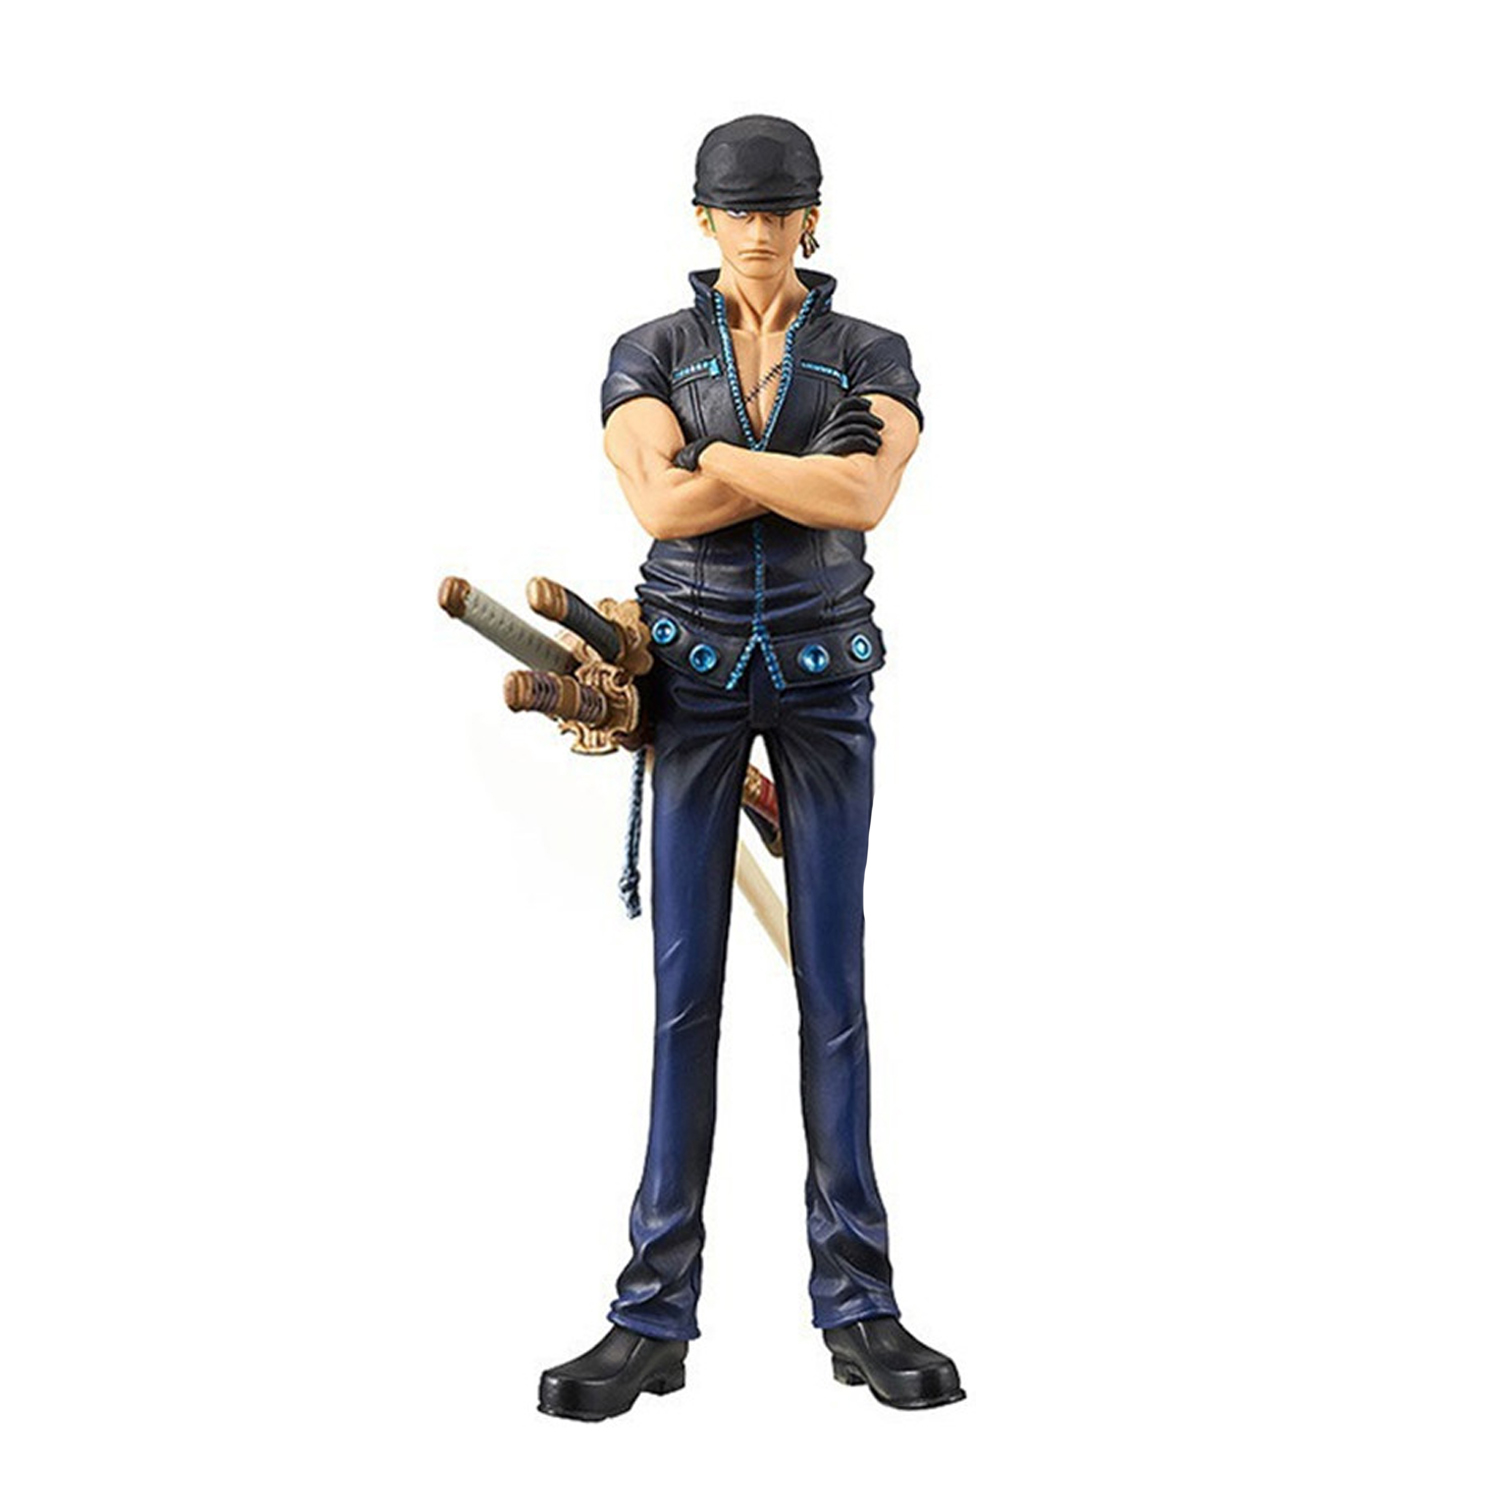 Chanycore Anime ONE PIECE DXF GOLD City Later New World Zoro 16cm Action Figures PVC onepiece toys doll model collection